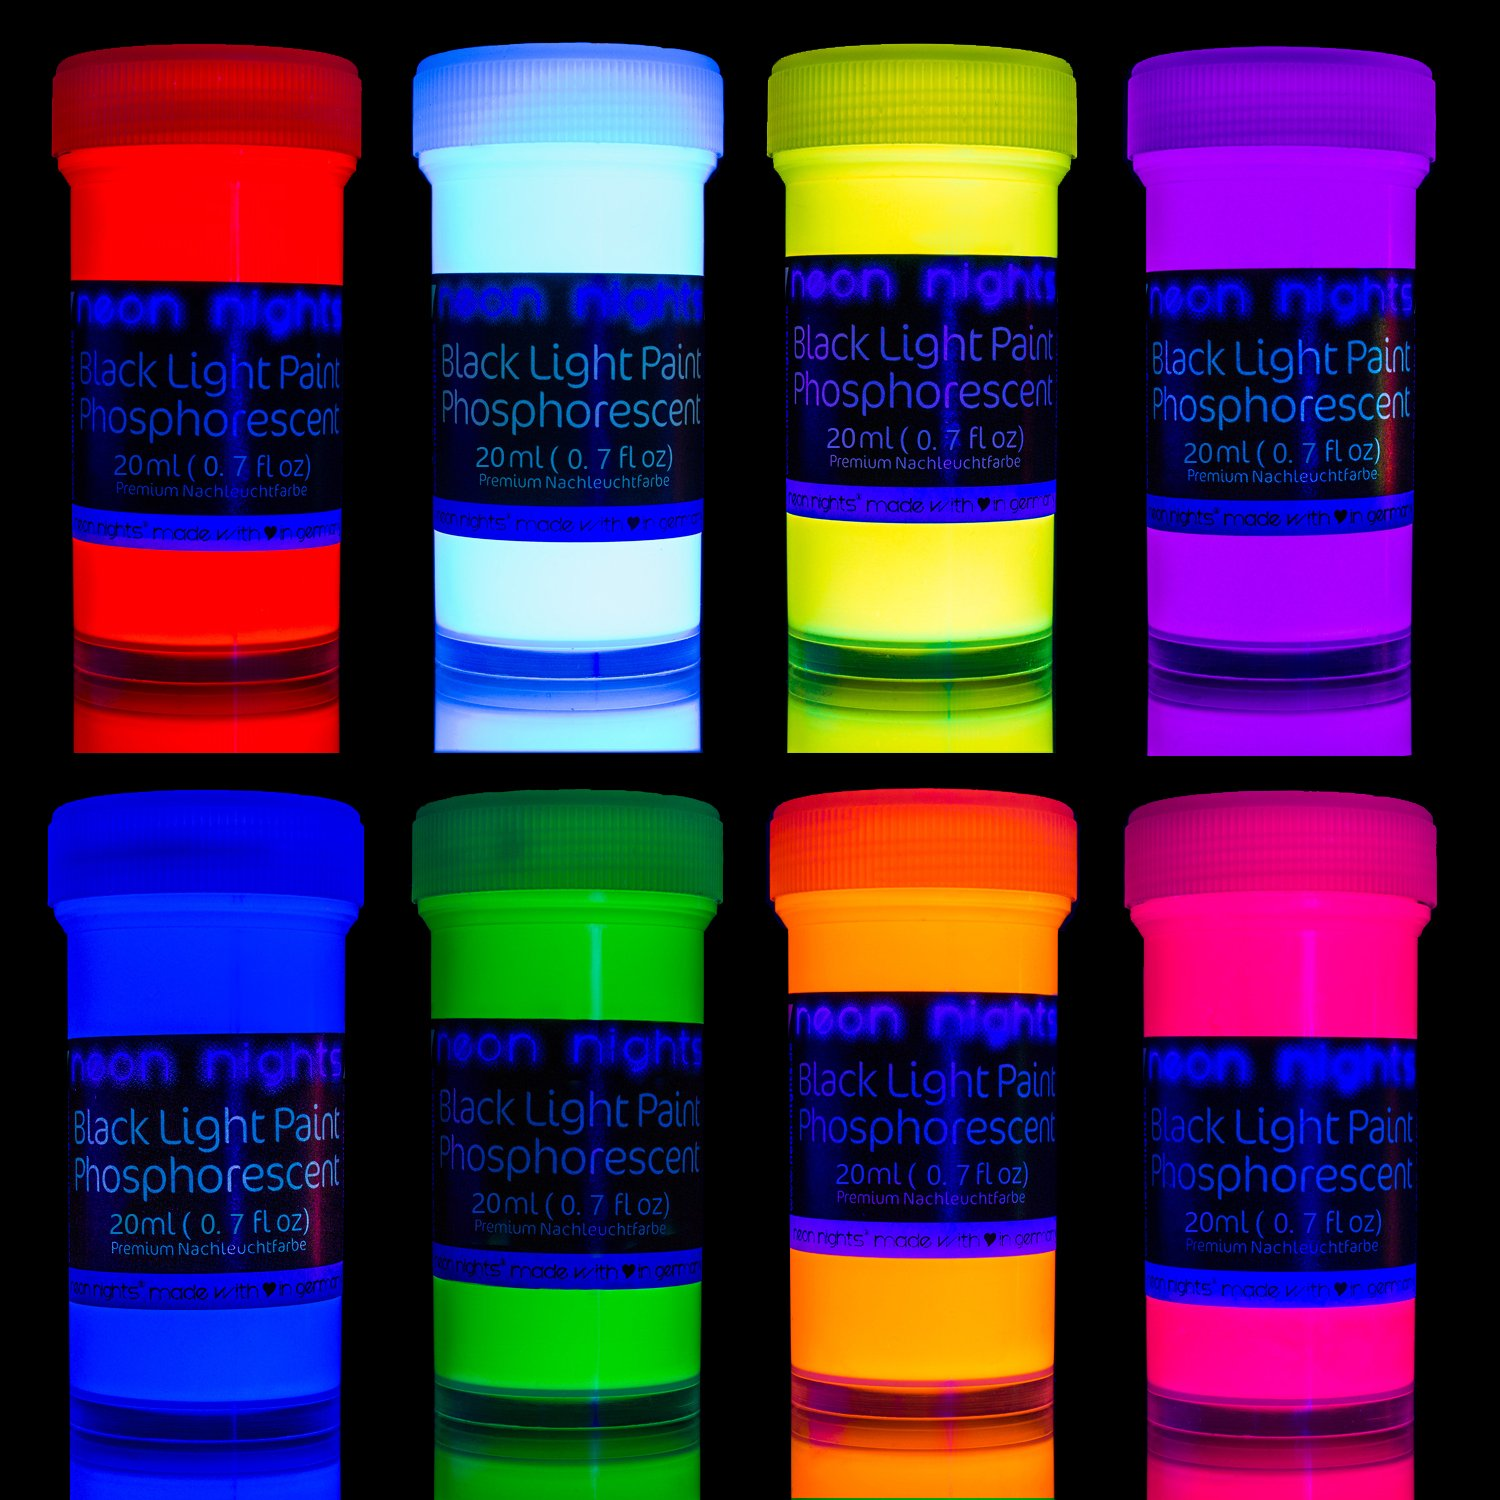 Premium Glow in The Dark Paint Set by neon nights - Set of 8 Professional Grade Neon Paints - Long-Lasting Self-Luminous Paint Handcrafted in Germany - Phosphorescent Glowing Neon Paint by neon nights